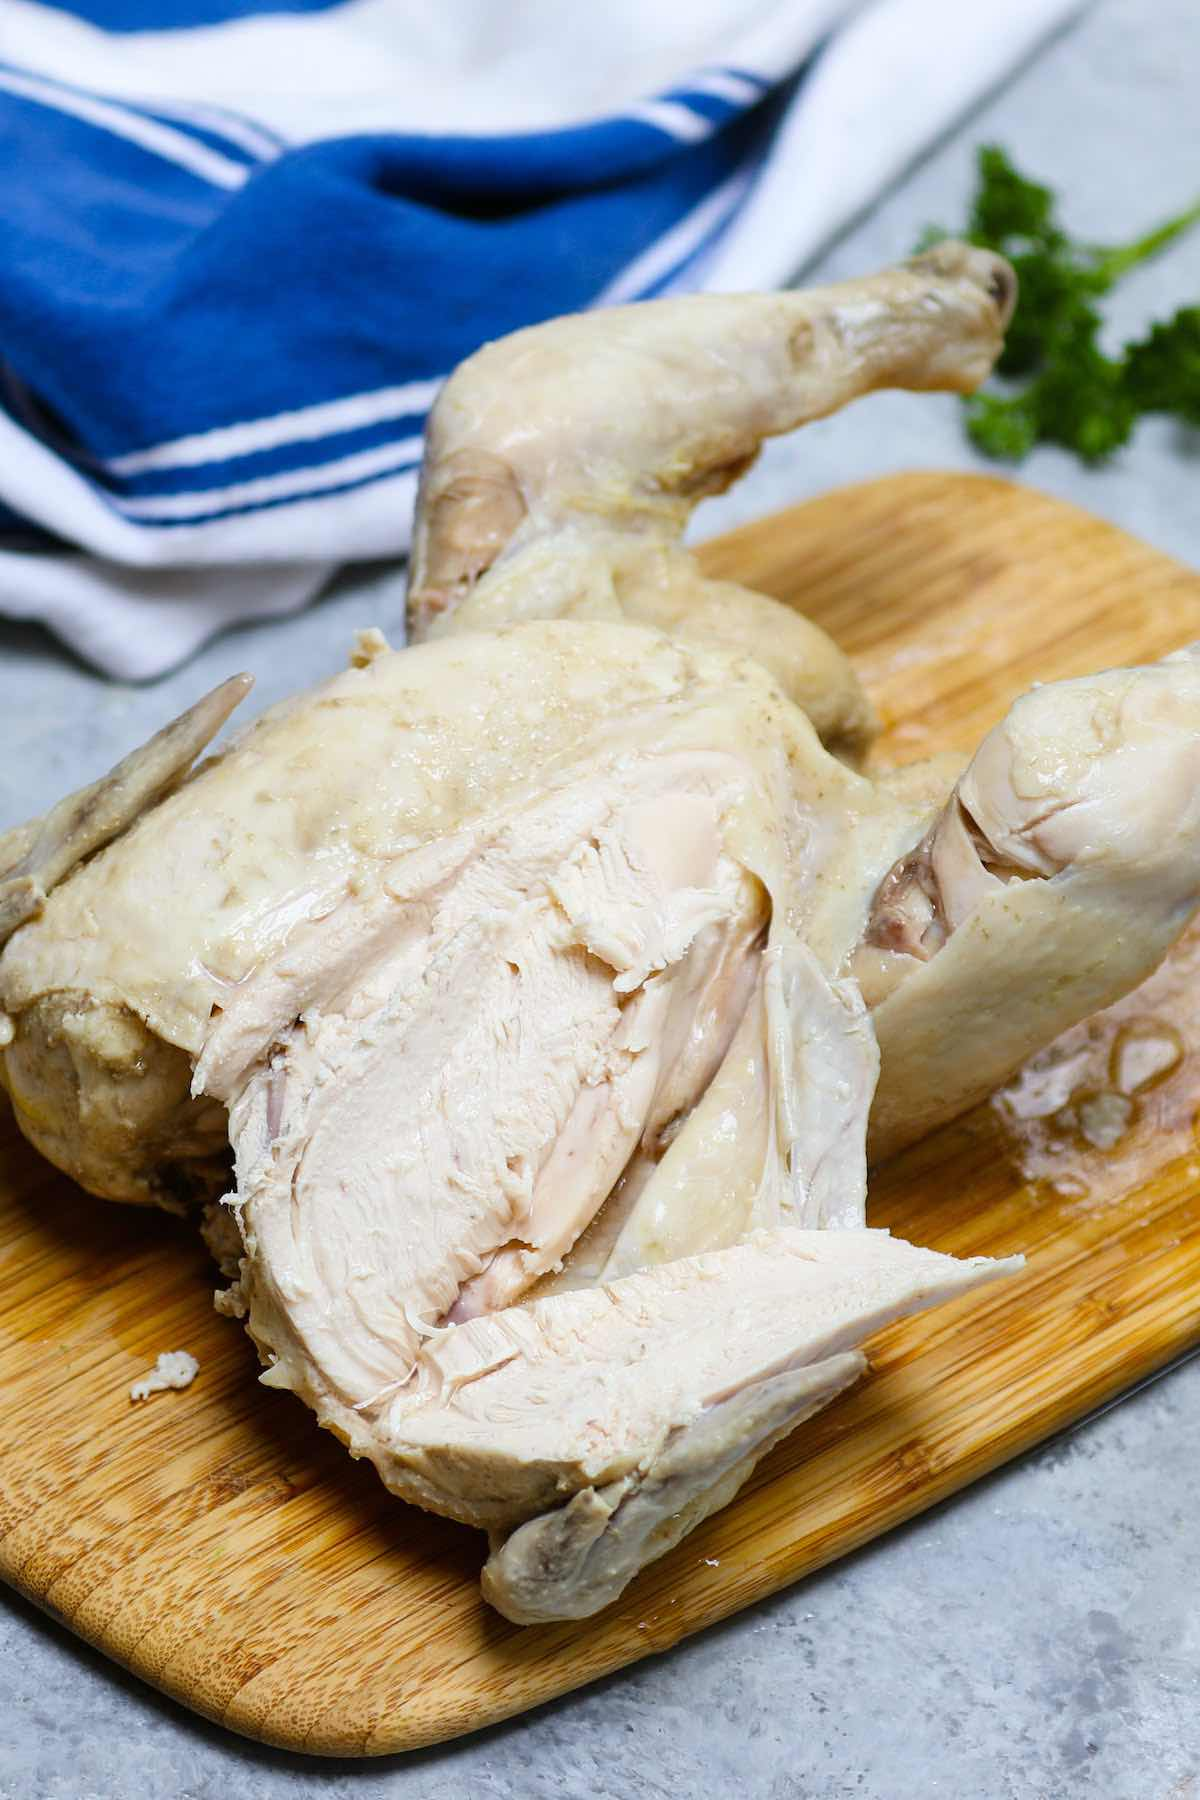 Carving up a whole cooked chicken for use in other recipes